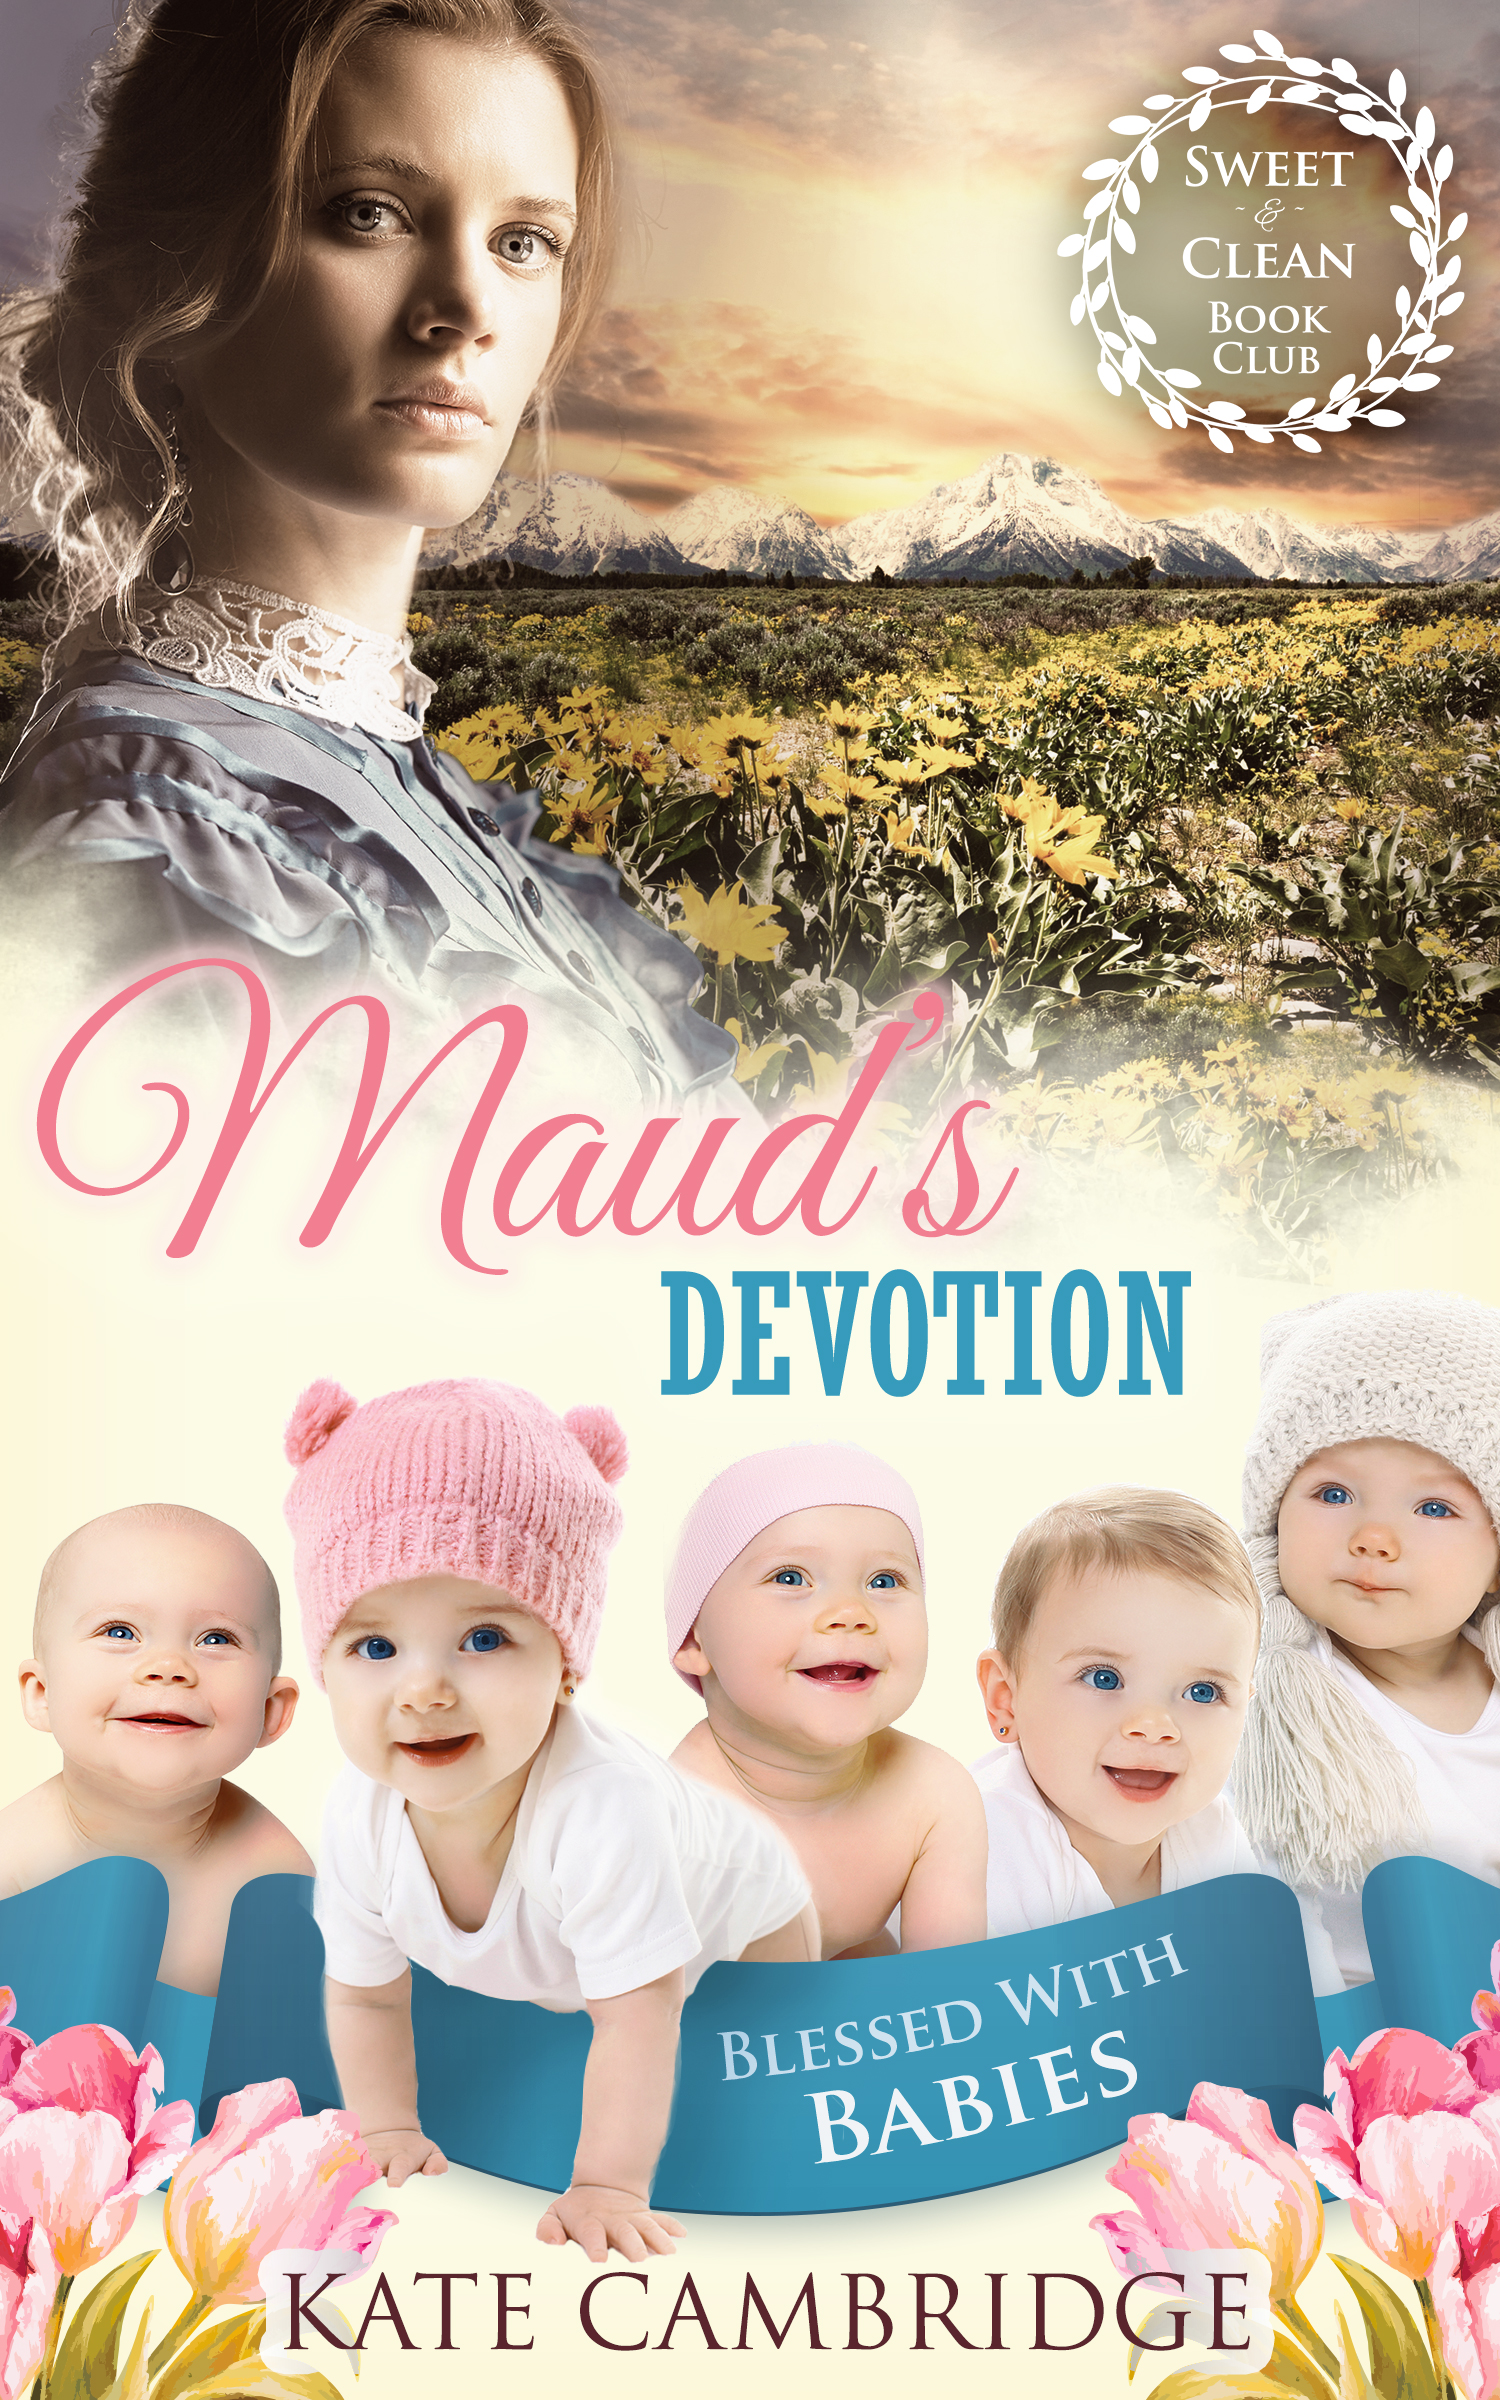 Mauds-Devotion-Blessed-With-Babies-Mail-Order-Bride